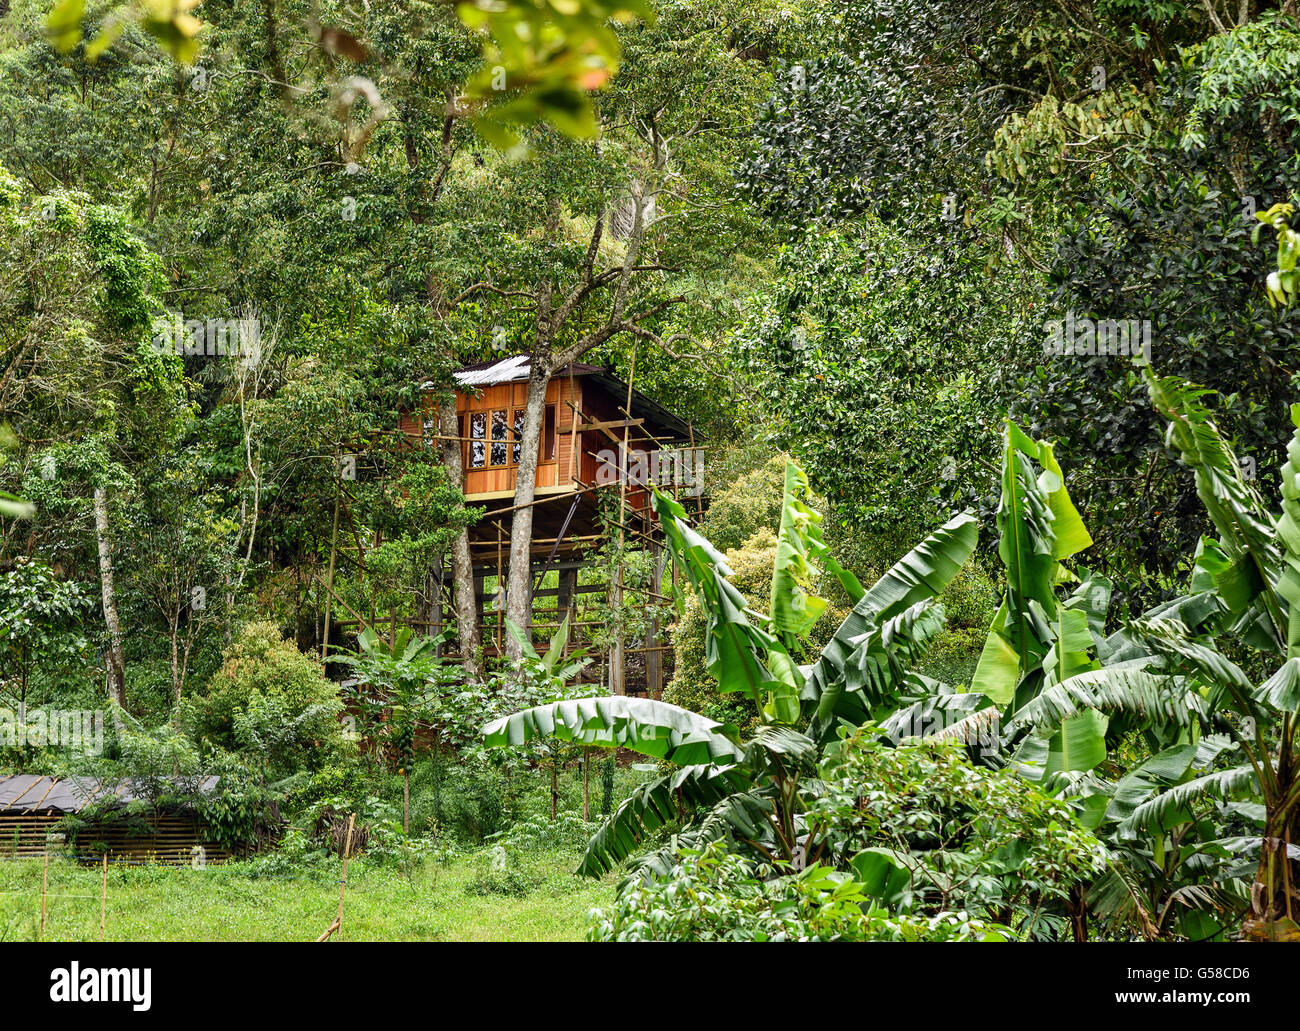 Tree house in the jungle. Tomohon. North Sulawesi. Indonesia - Stock Image